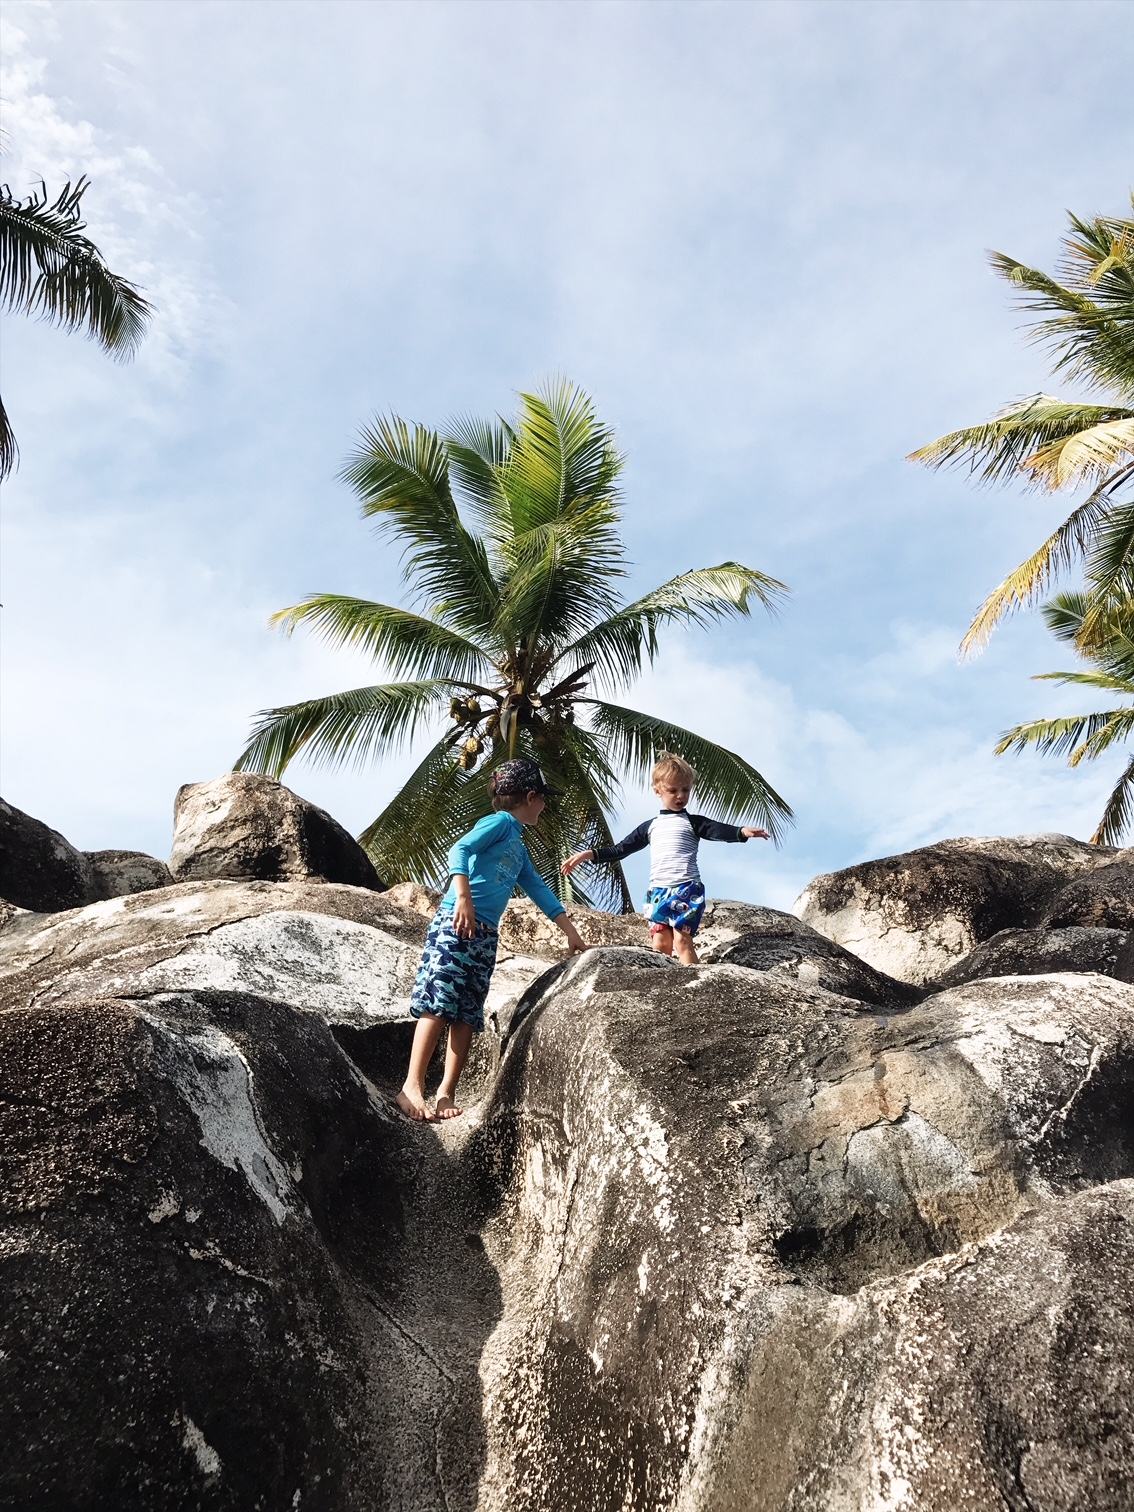 Top 10 Family Activities in the BVI - What to do with your kids on your British Virgin Islands Vacation. Exploring the Baths and Spring Bay